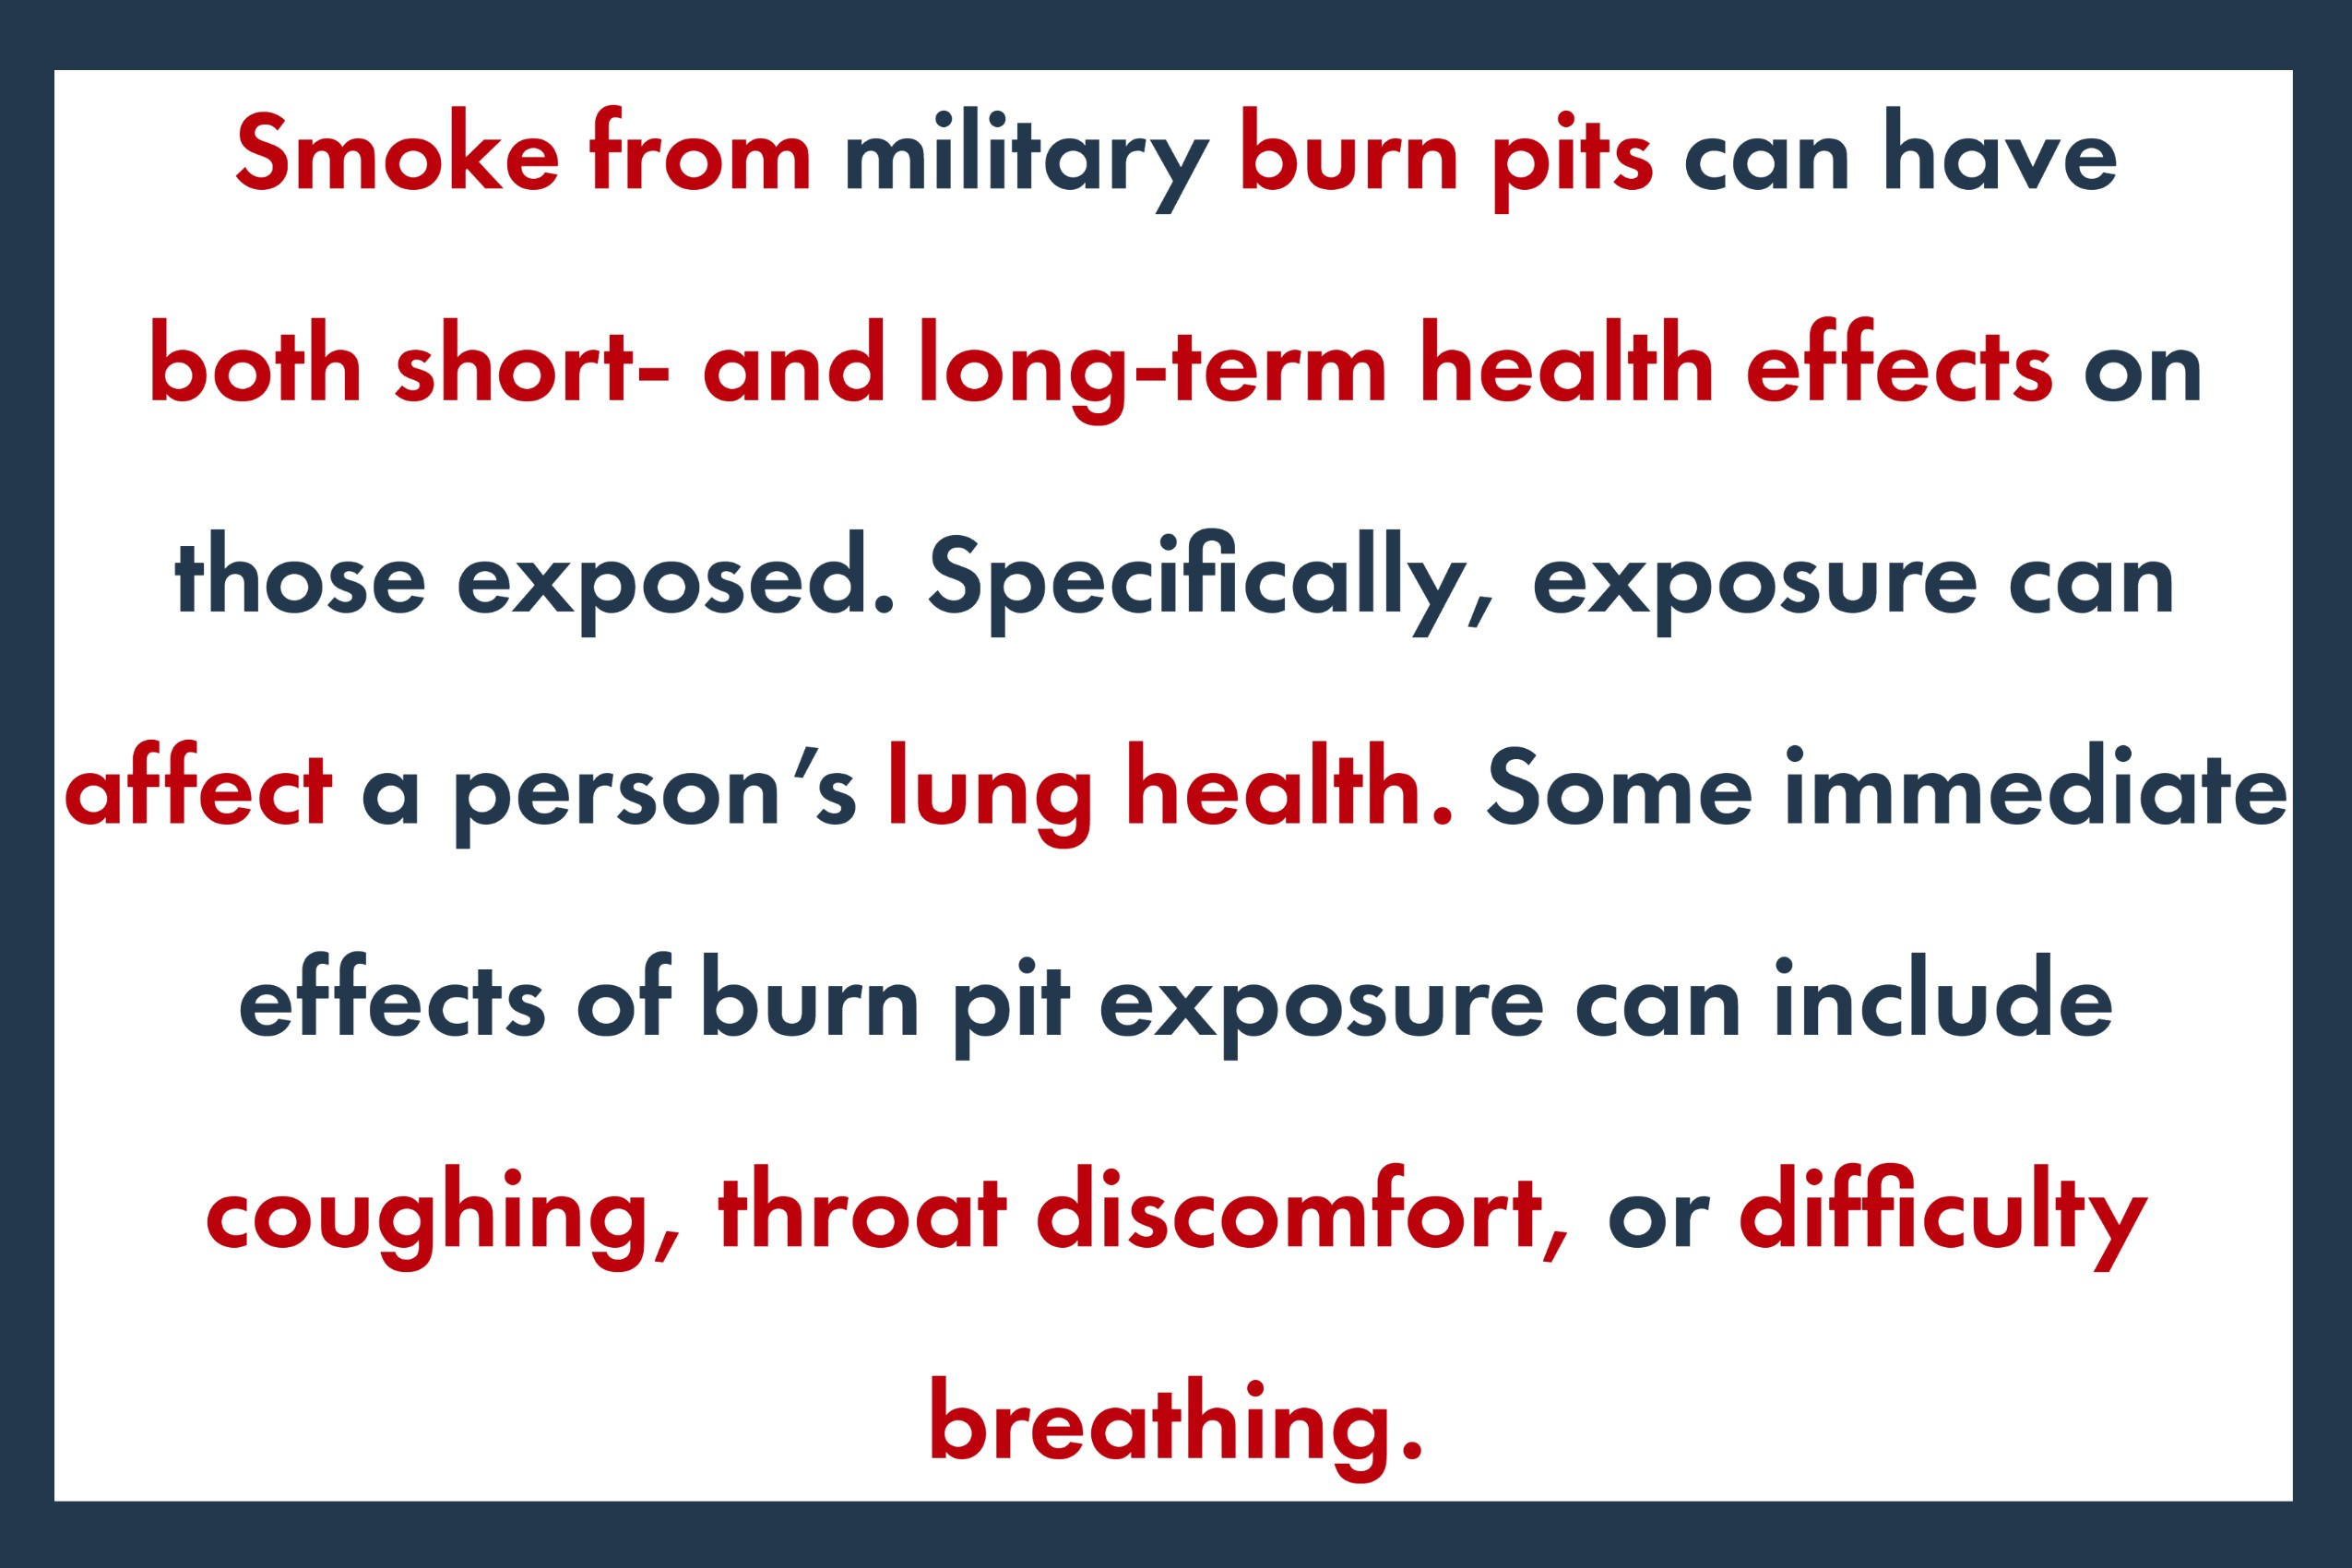 Smoke from military burn pits can have both short- and long-term health effects on those exposed. Specifically, exposure can affect a person's lung health. Some immediate effects of burn pit exposure can include coughing, throat discomfort, or difficulty breathing.